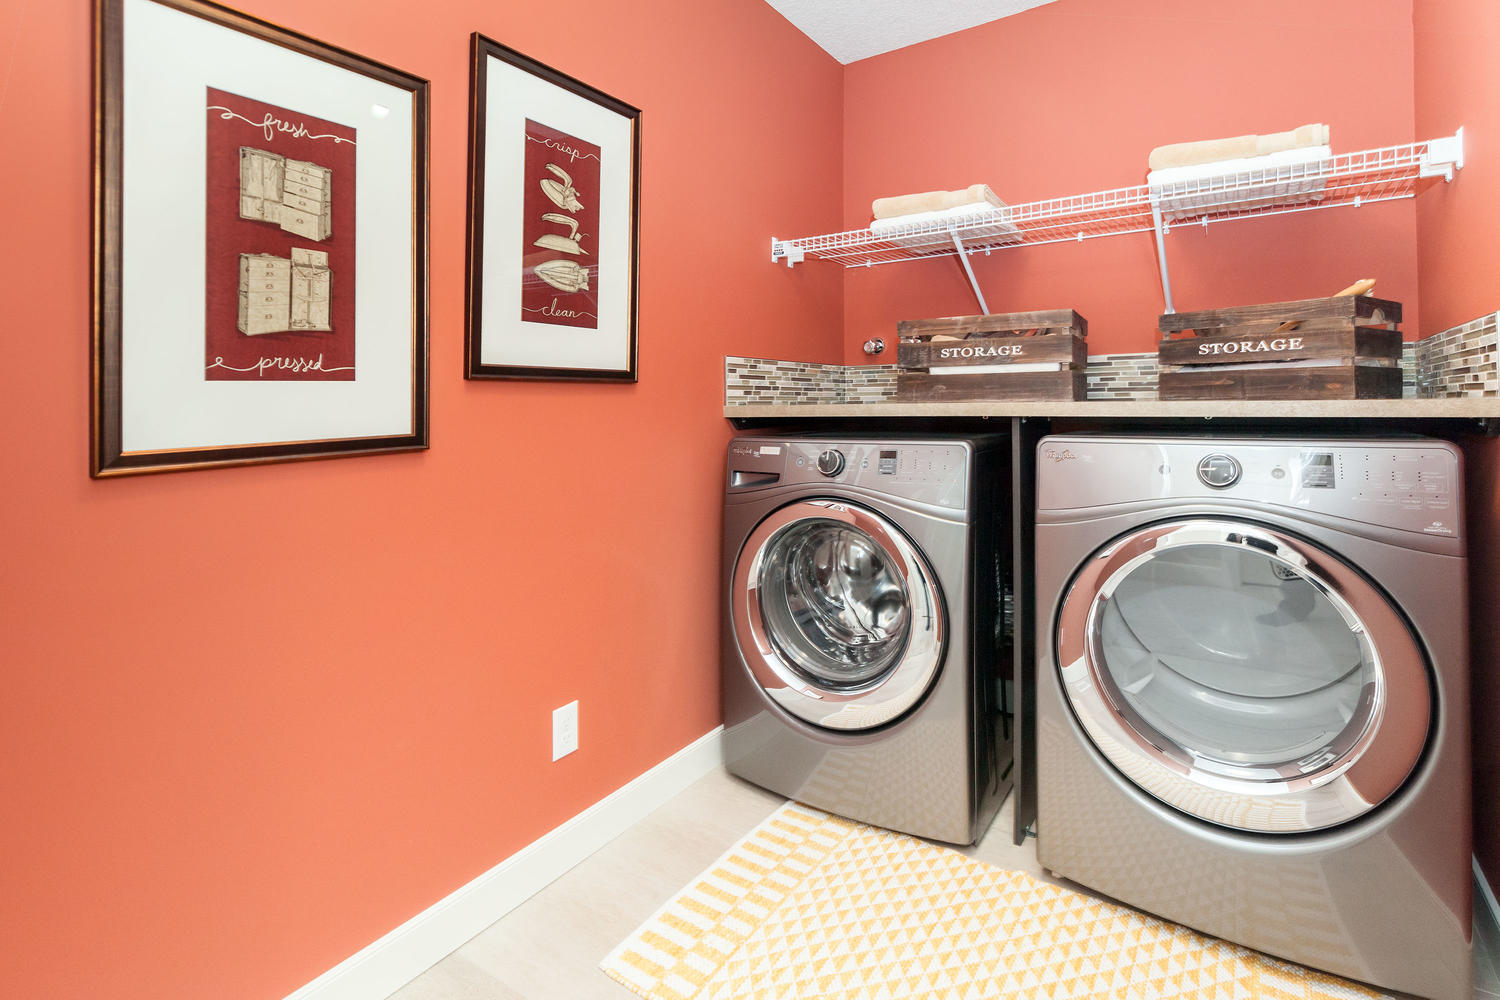 burnt orange painted wall in the laundry room of the pacesetter front drive homes.